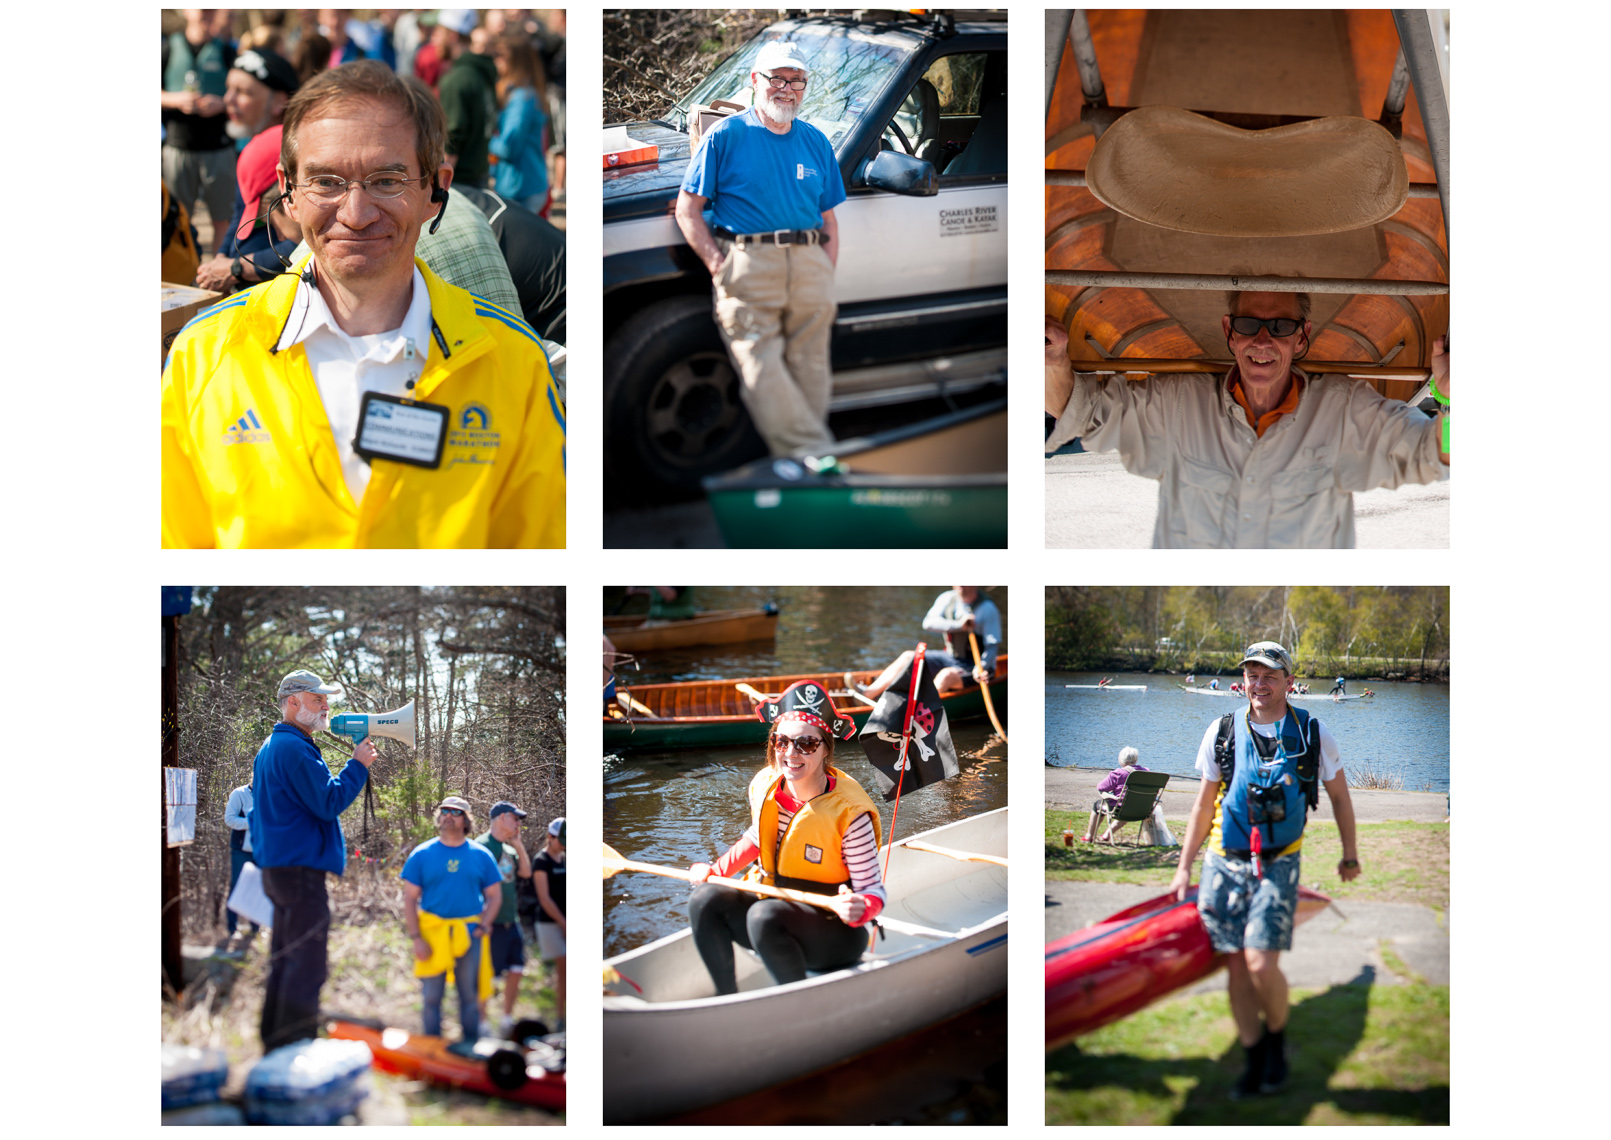 Run of the Charles Regatta Portraits for Canoe & Kayak Magazine